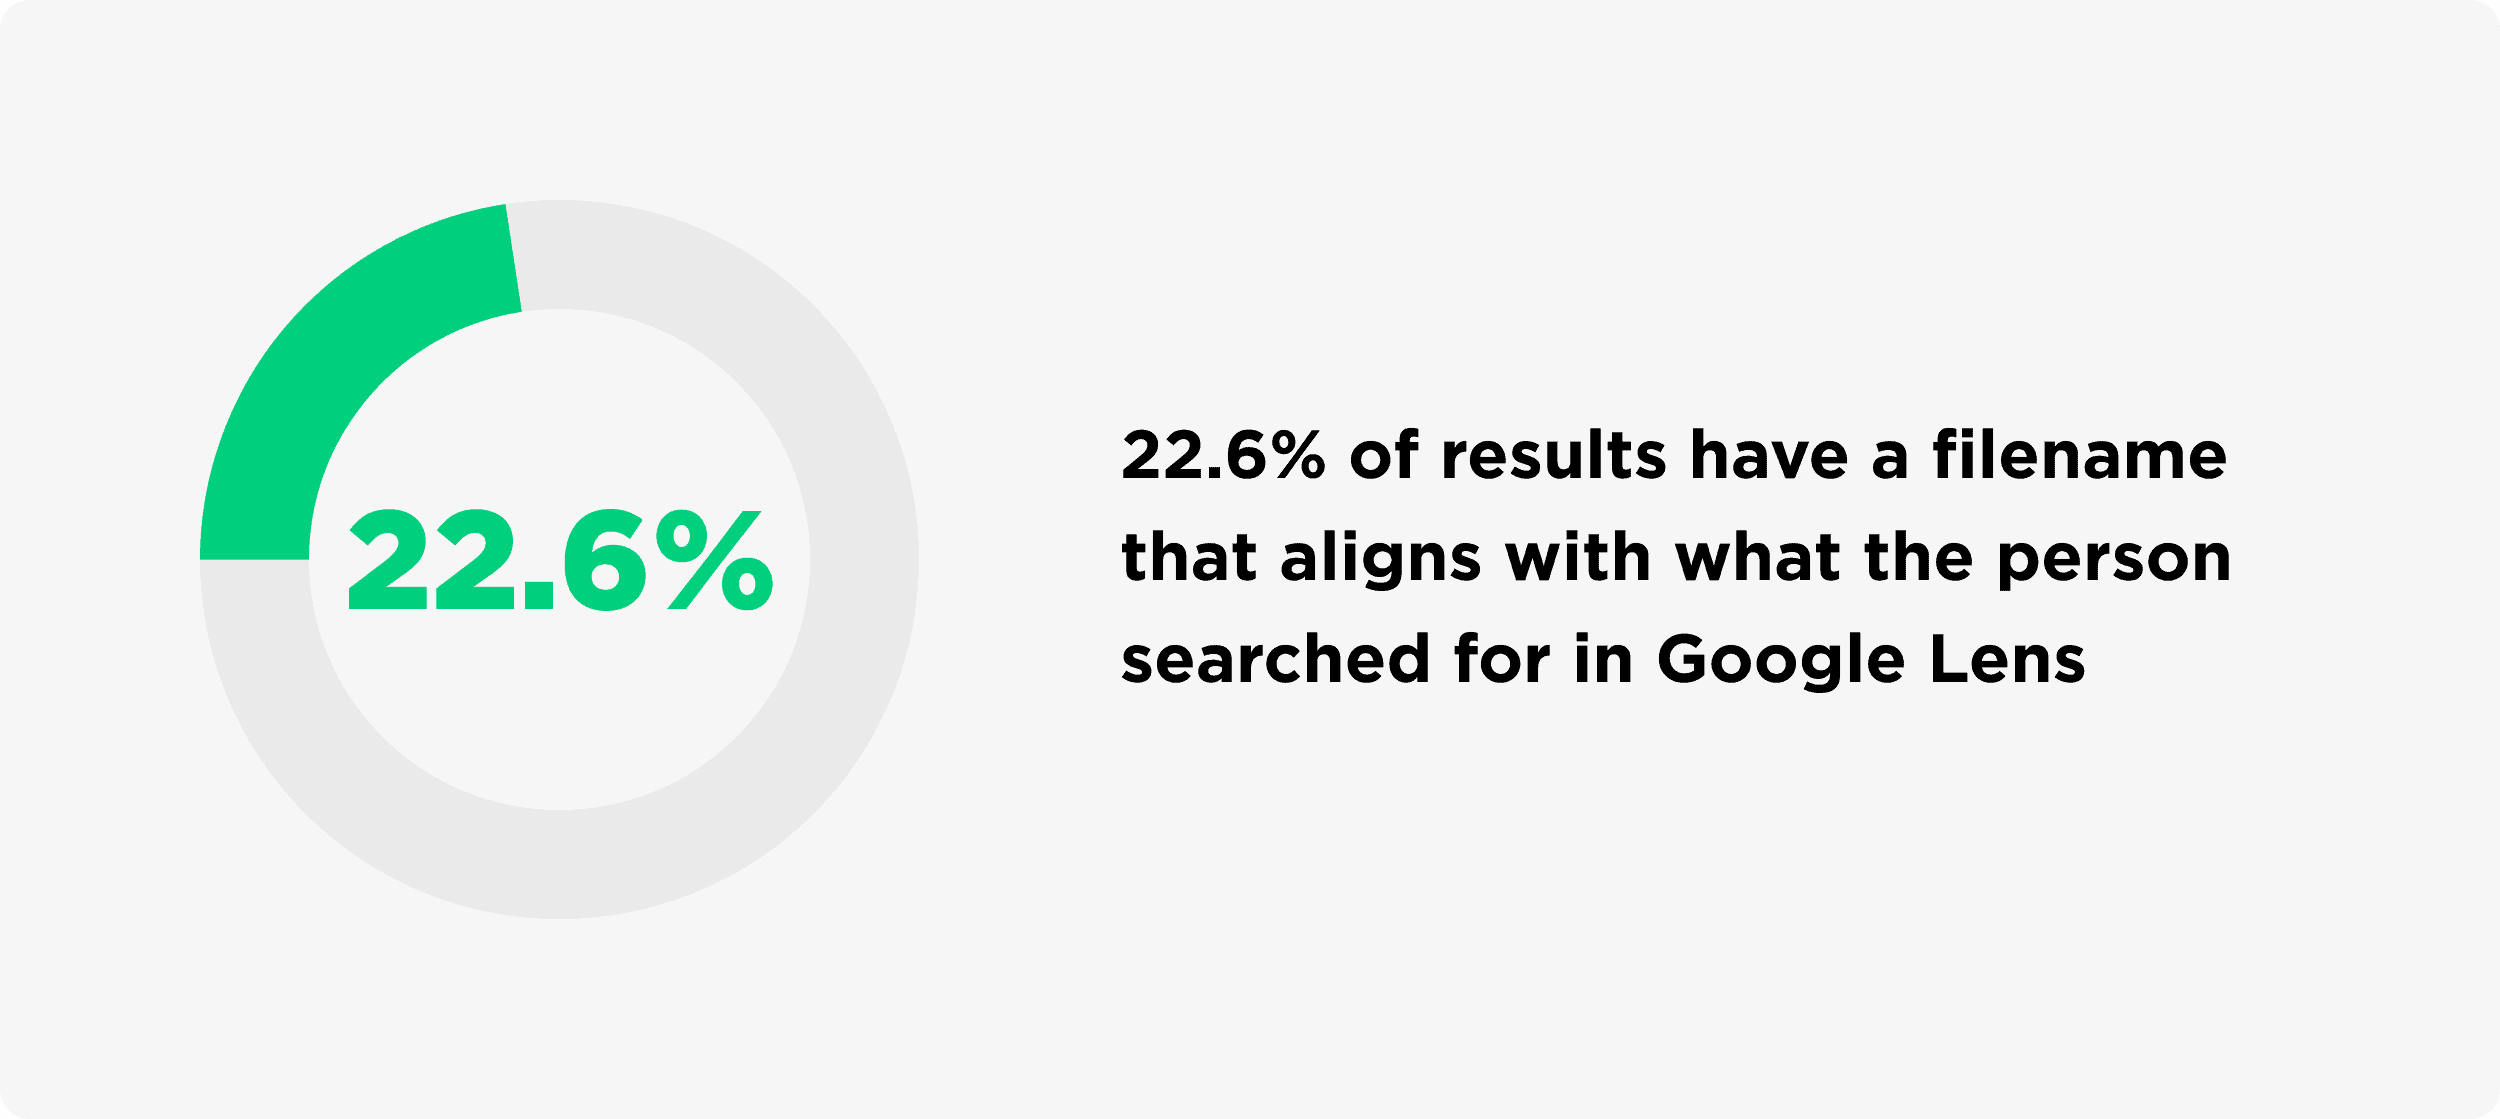 Percentage Of Results That Have A Filename That Aligns With What The Person Searched For In Google Lens